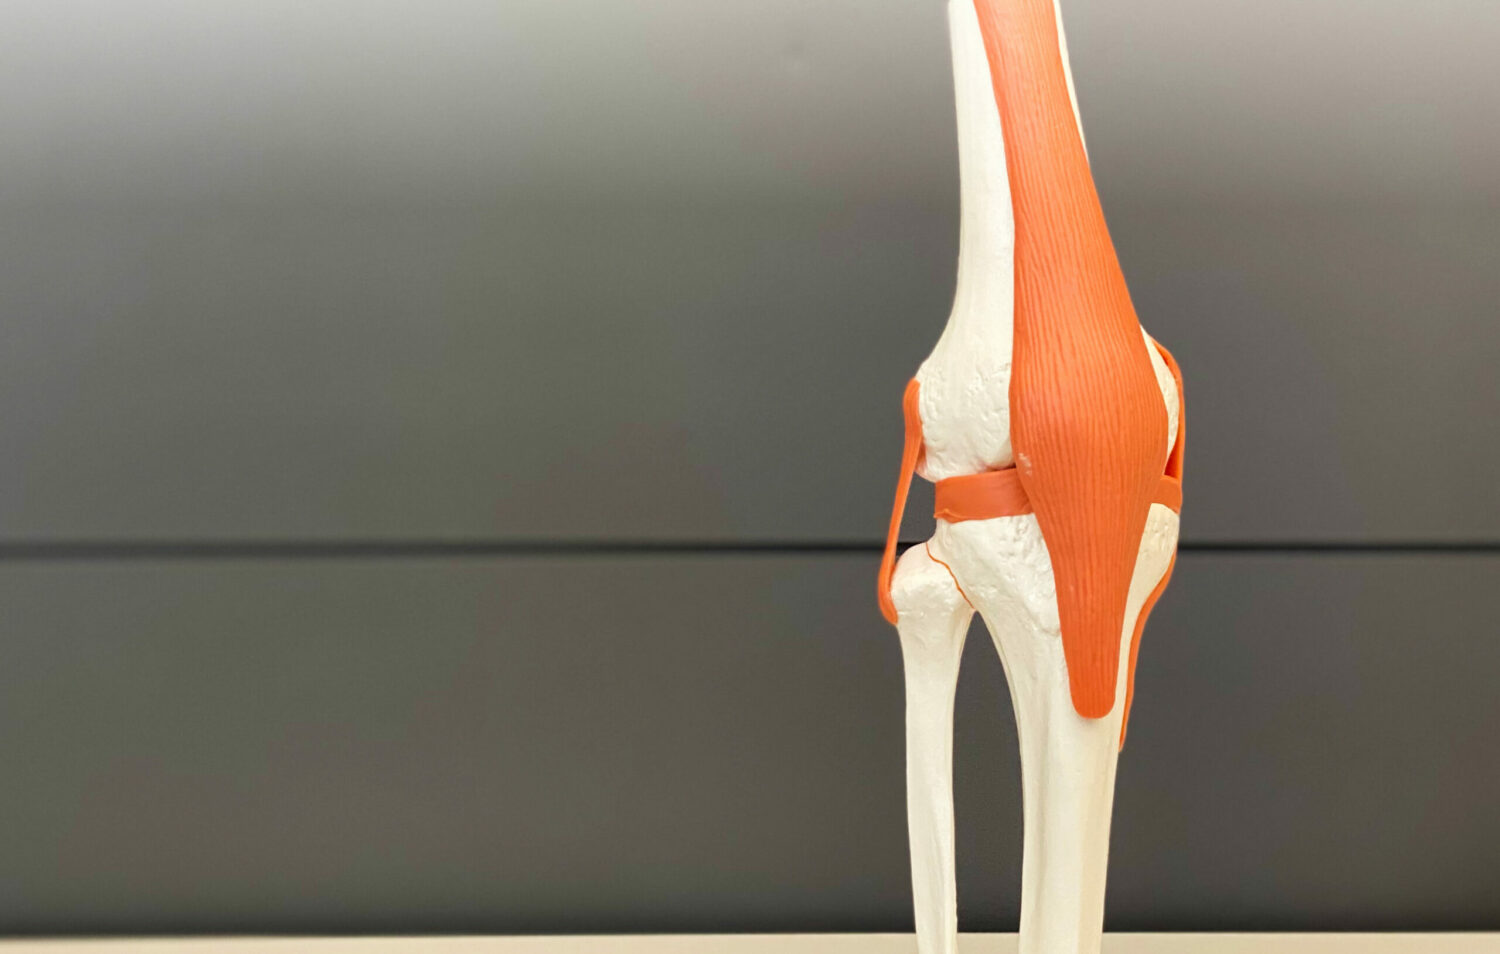 anatomical model of a knee joint